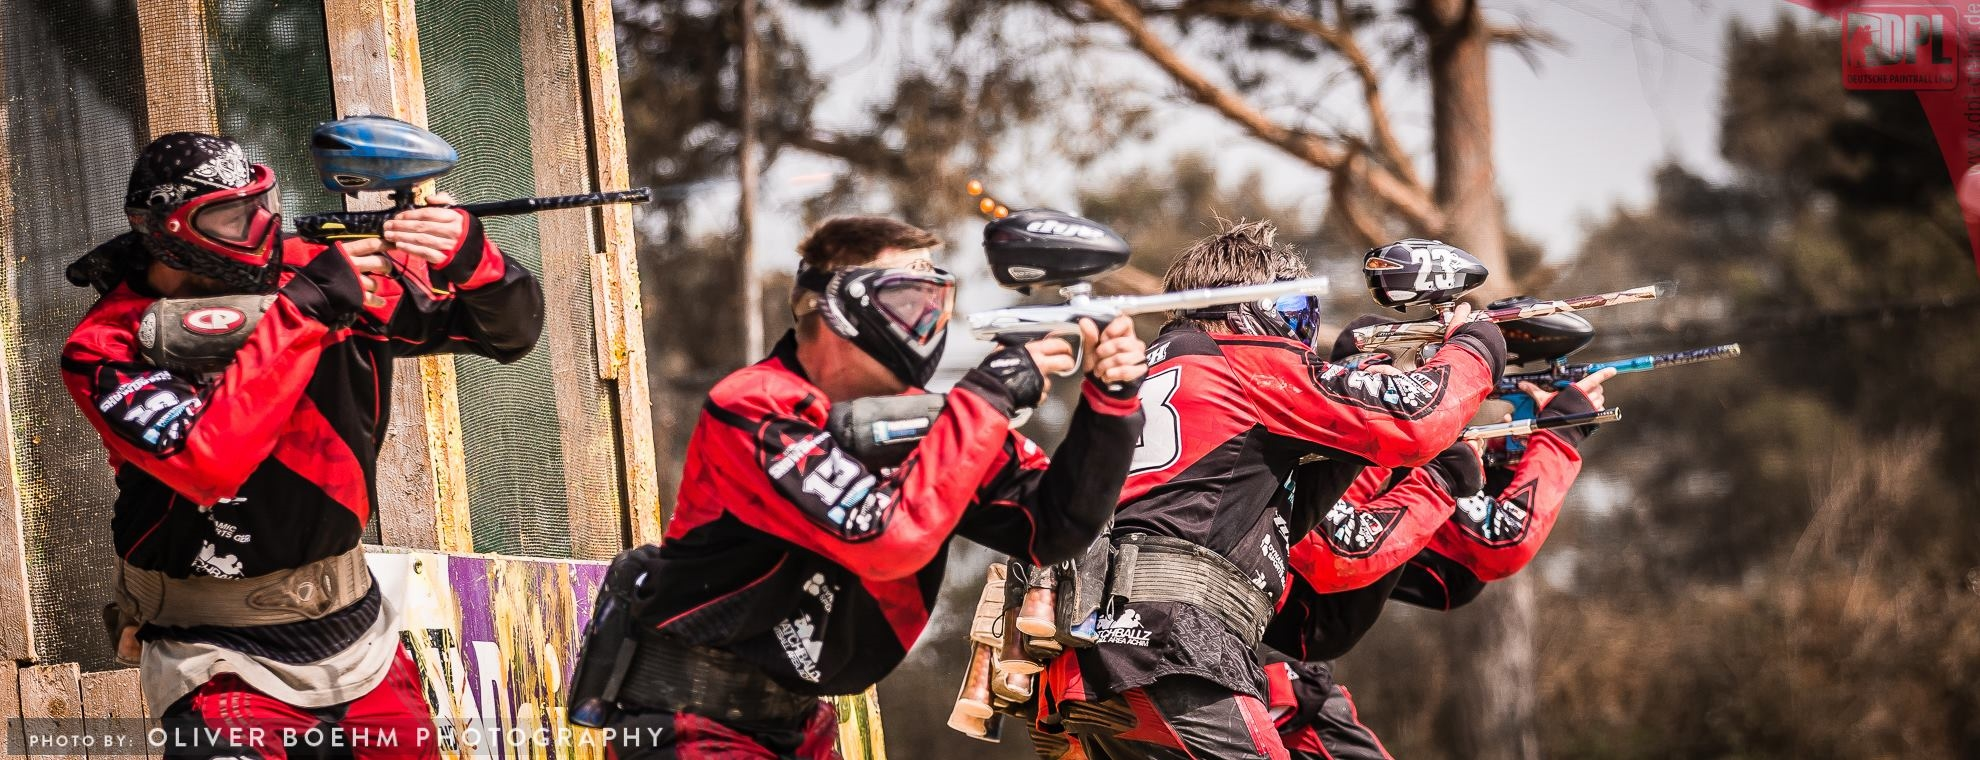 Paintball Sports Teamsuport für Liga und Turnier Teams DPL und X-Series